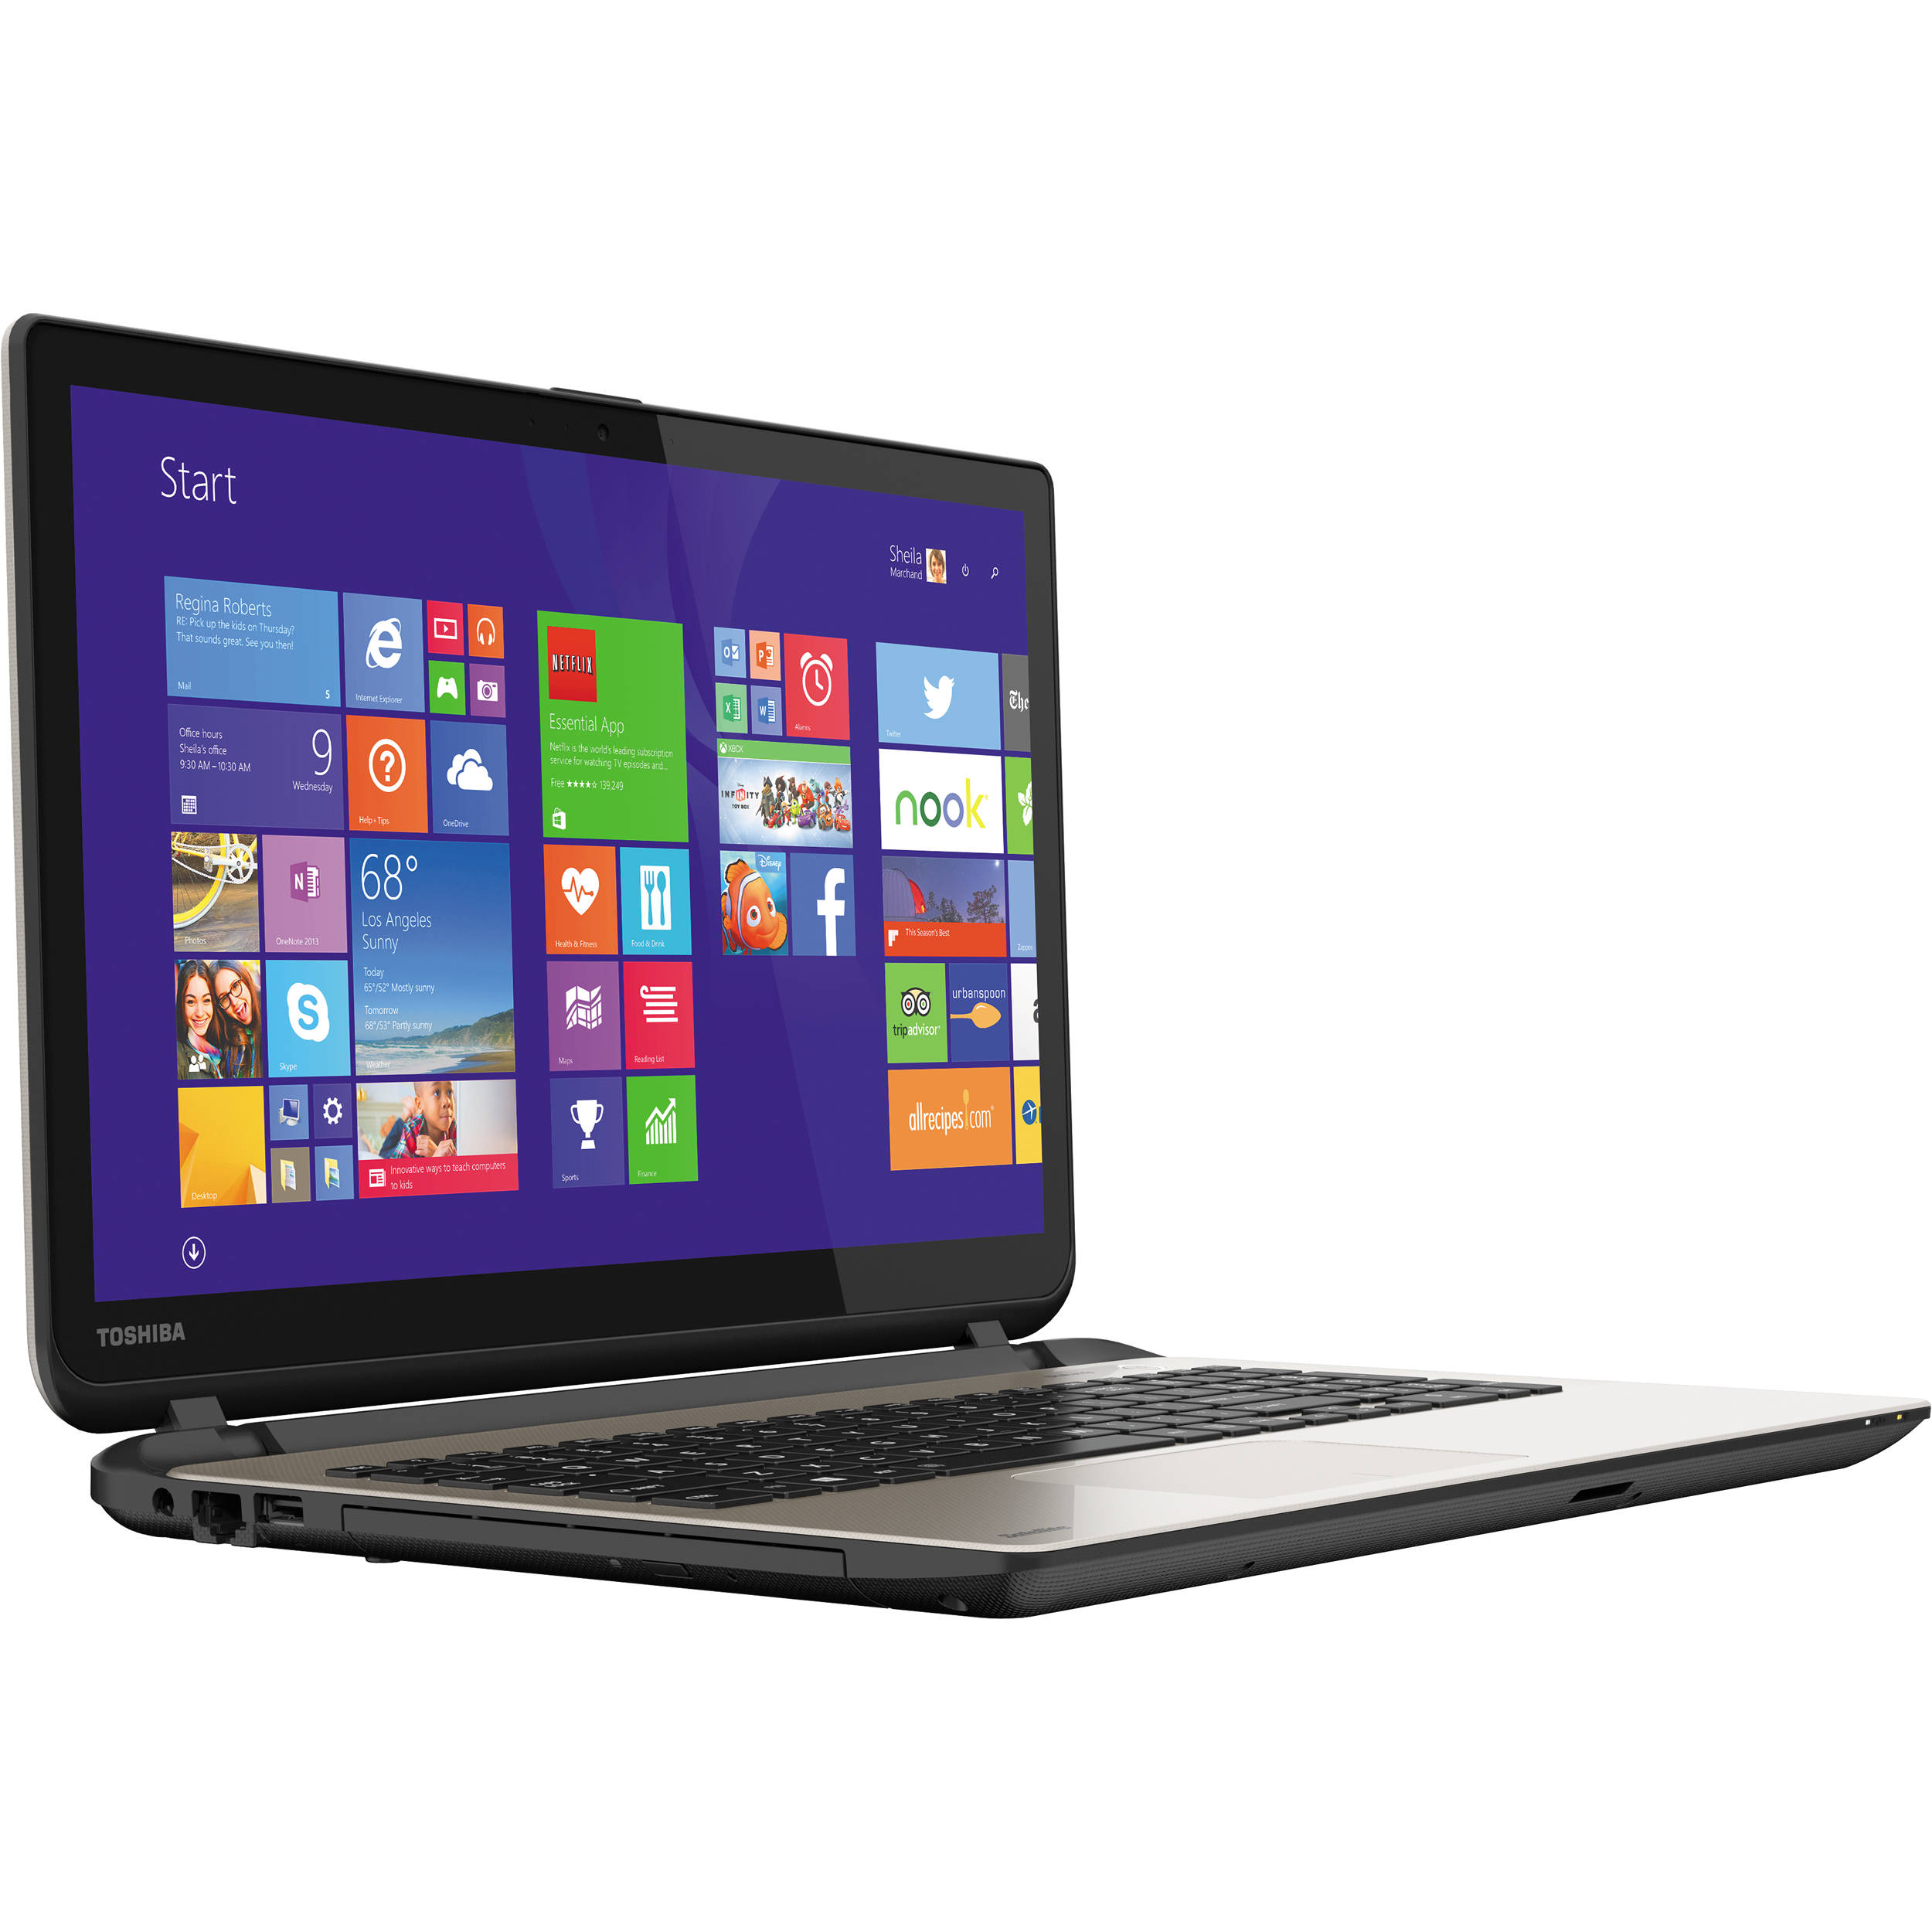 TOSHIBA SATELLITE L55DT WINDOWS VISTA 32-BIT